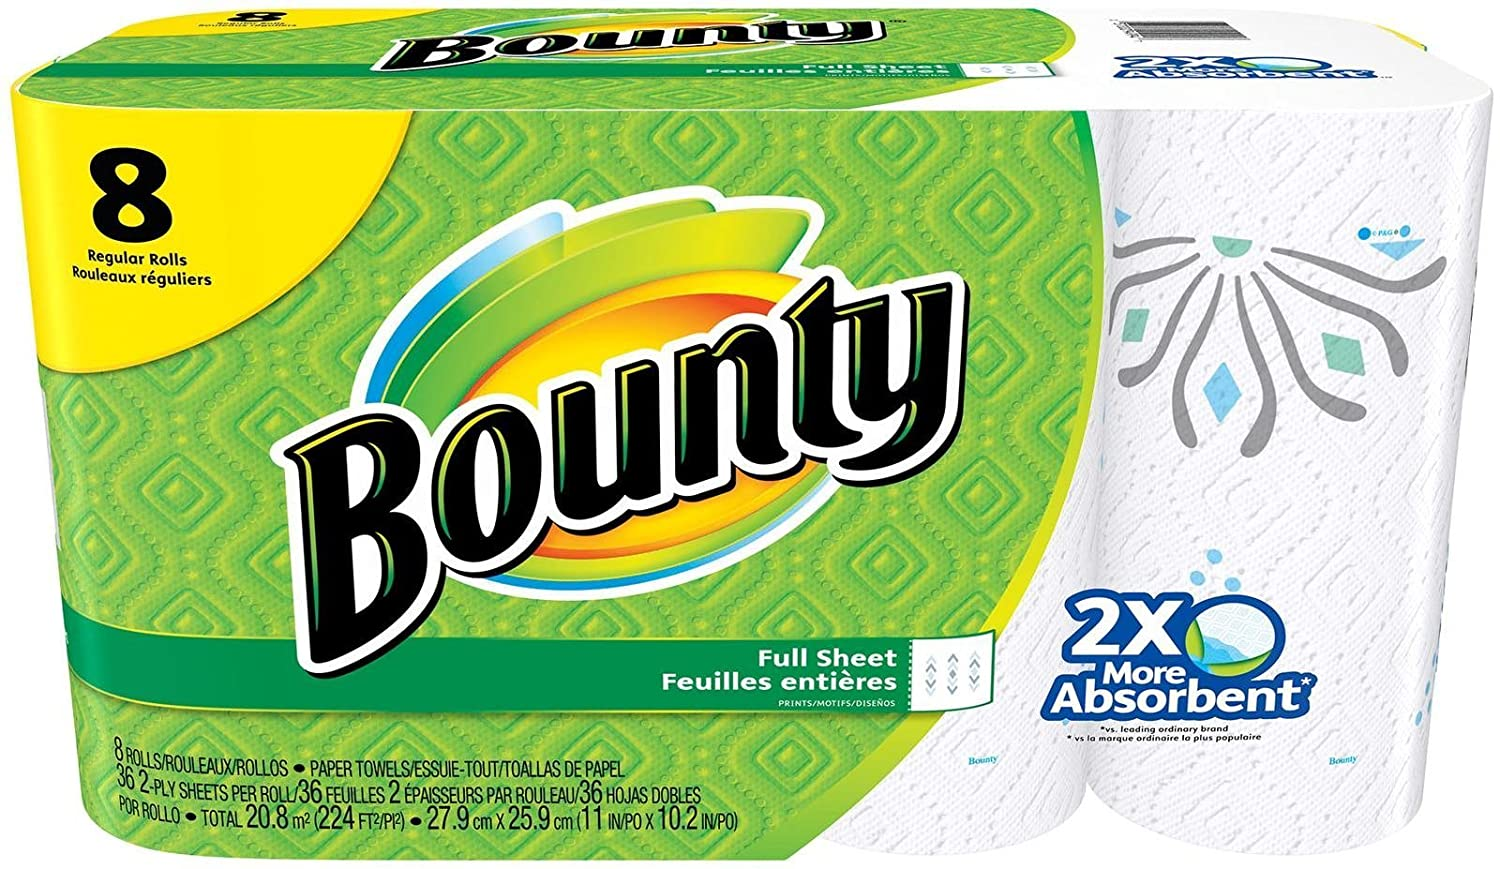 Amazon.com: Bounty Paper Towels, Prints, Regular Roll - 8 Pack: Health & Personal Care